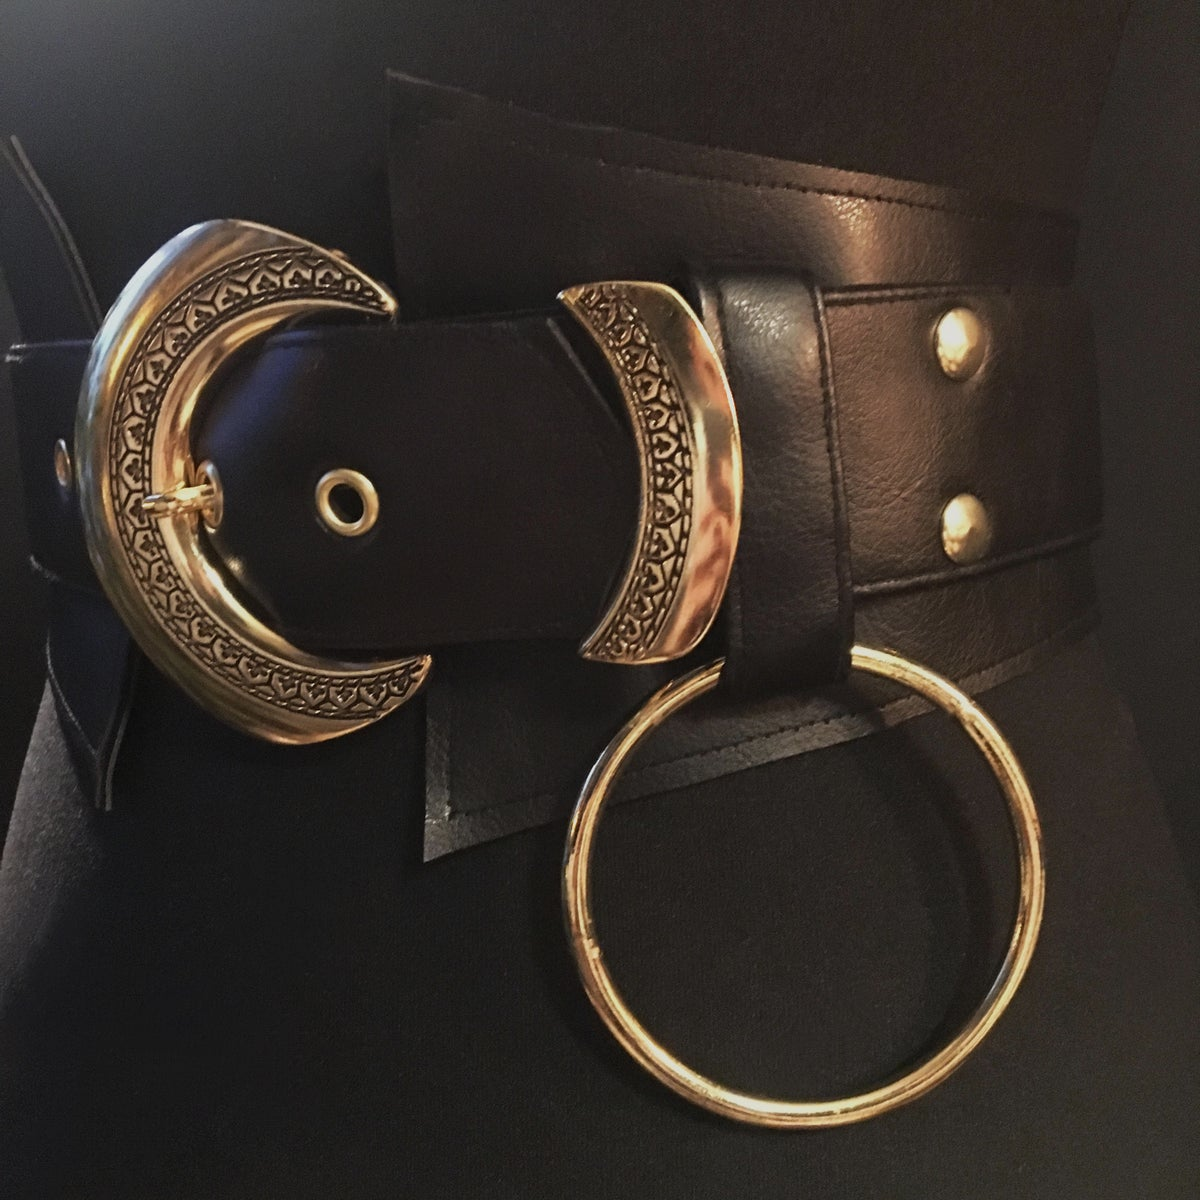 Vegan leather sincher with gold vingtage buckle, slider and o ring